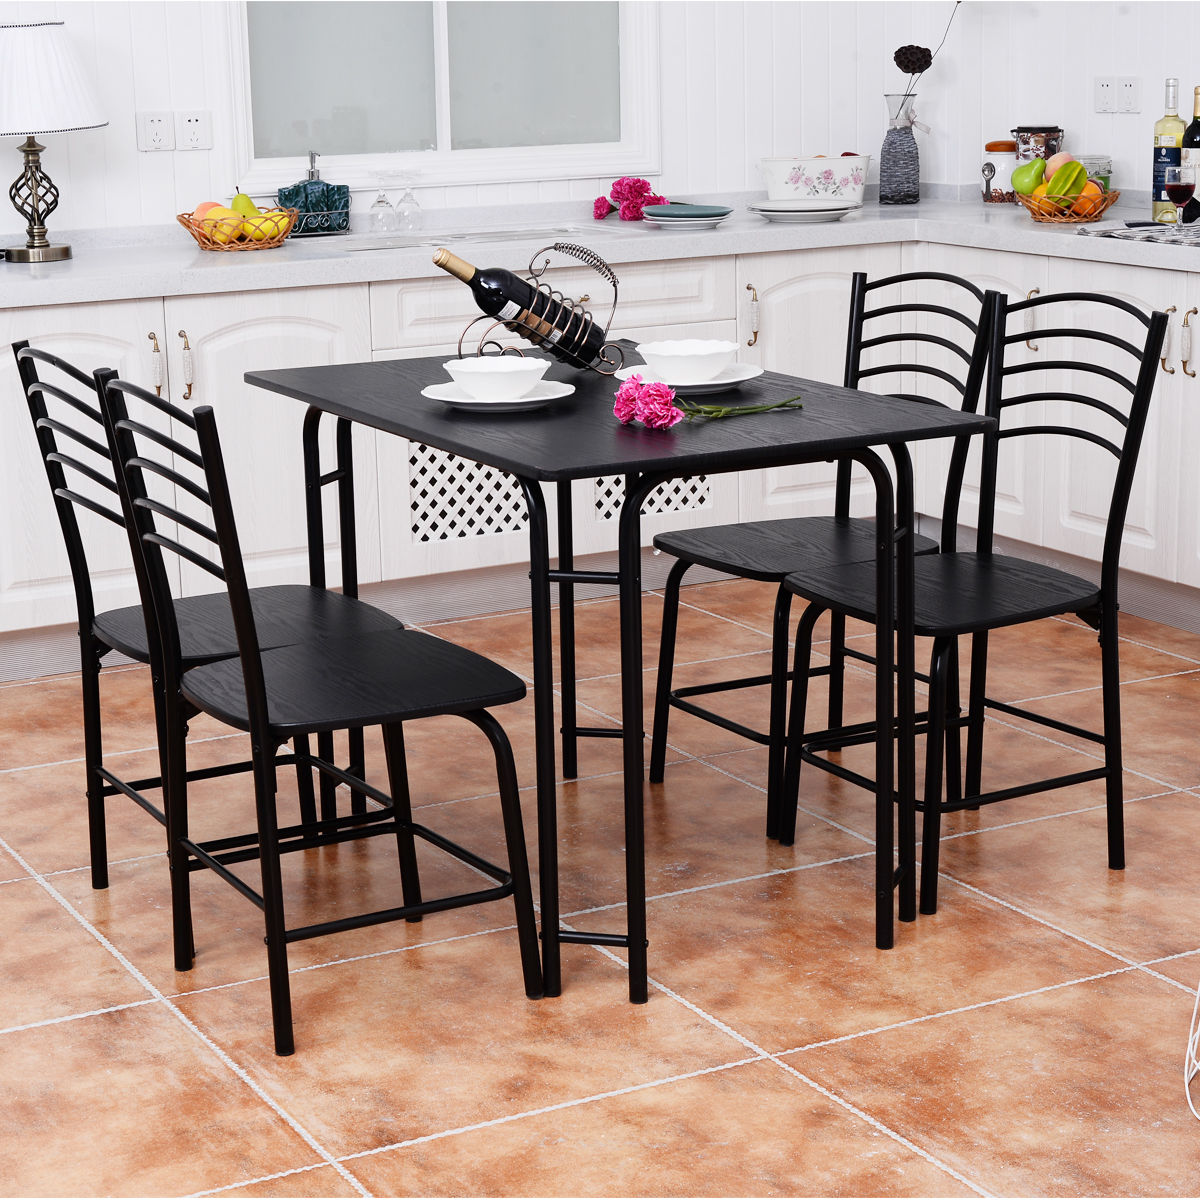 Modern Dining Set 5 Pcs Modern Dining Table Set 4 Chairs Steel Frame Home Kitchen Furniture Black